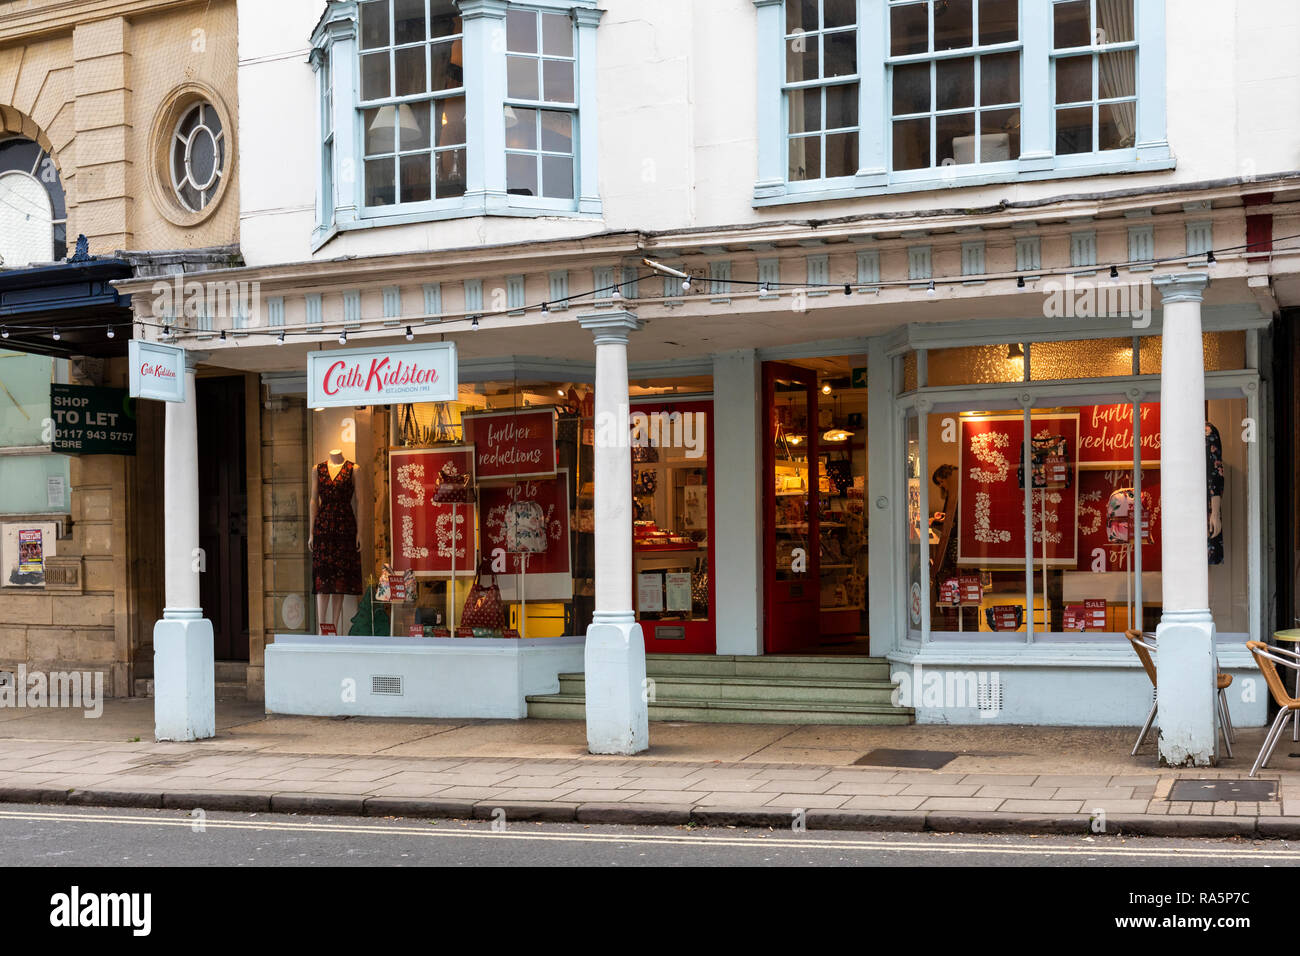 Cath Kidston, High Street, Marlborough, Wiltshire, Inglaterra Imagen De Stock